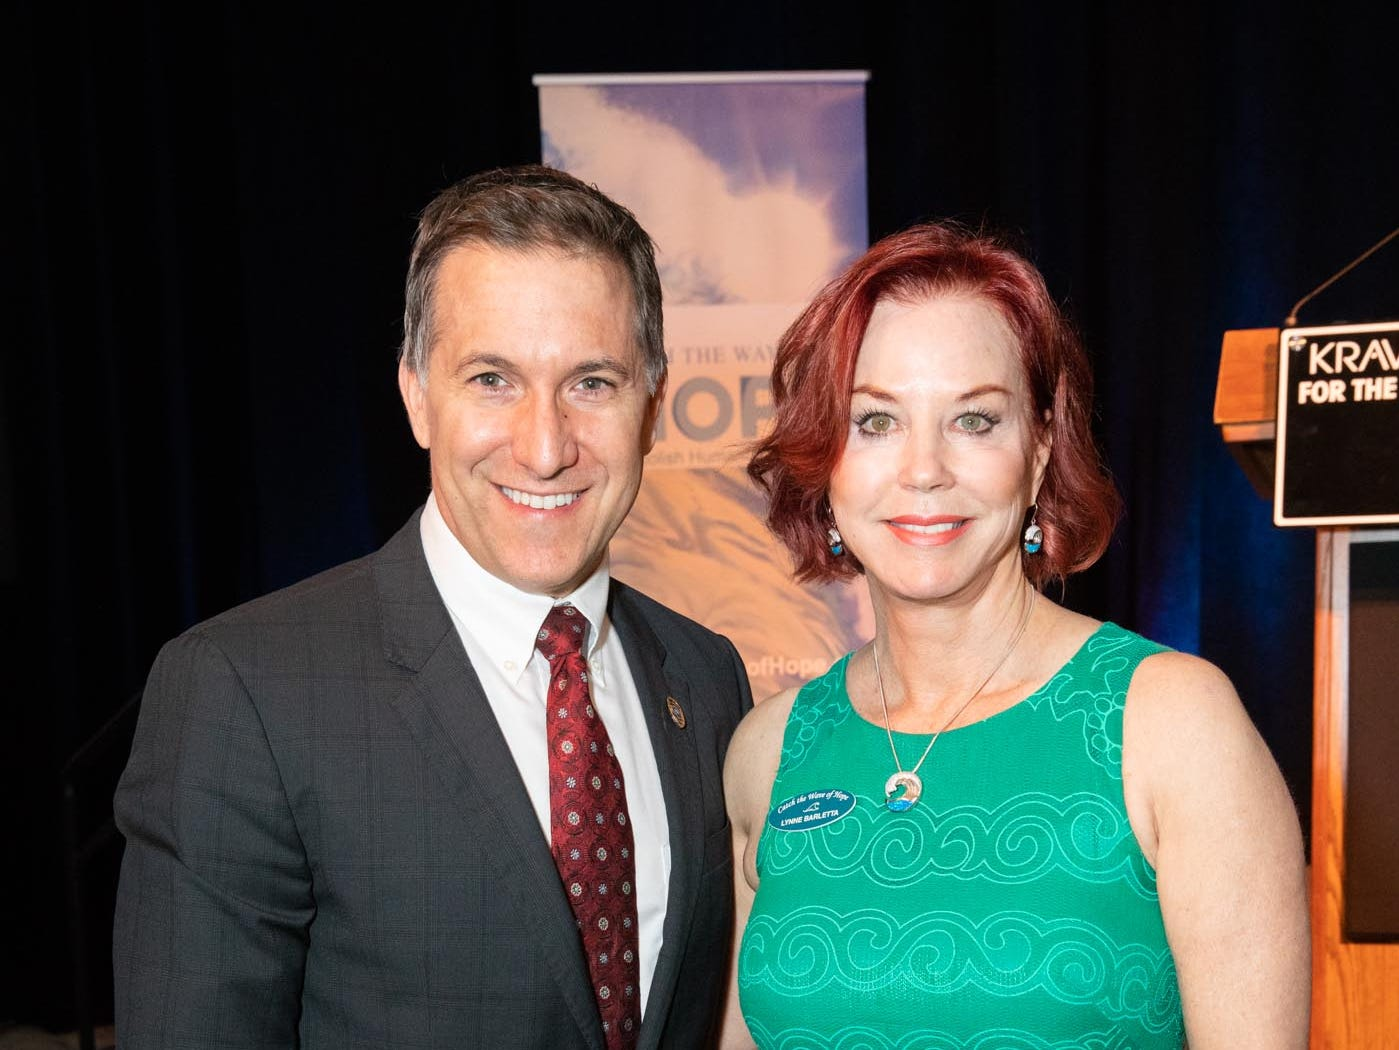 State Attorney Dave Aronberg, left, and Lynne Barletta, founder of Catch the Wave of Hope, at the Kravis Center in West Palm Beach for the nonprofit's breakfast to raise money and awareness about human sex trafficking.